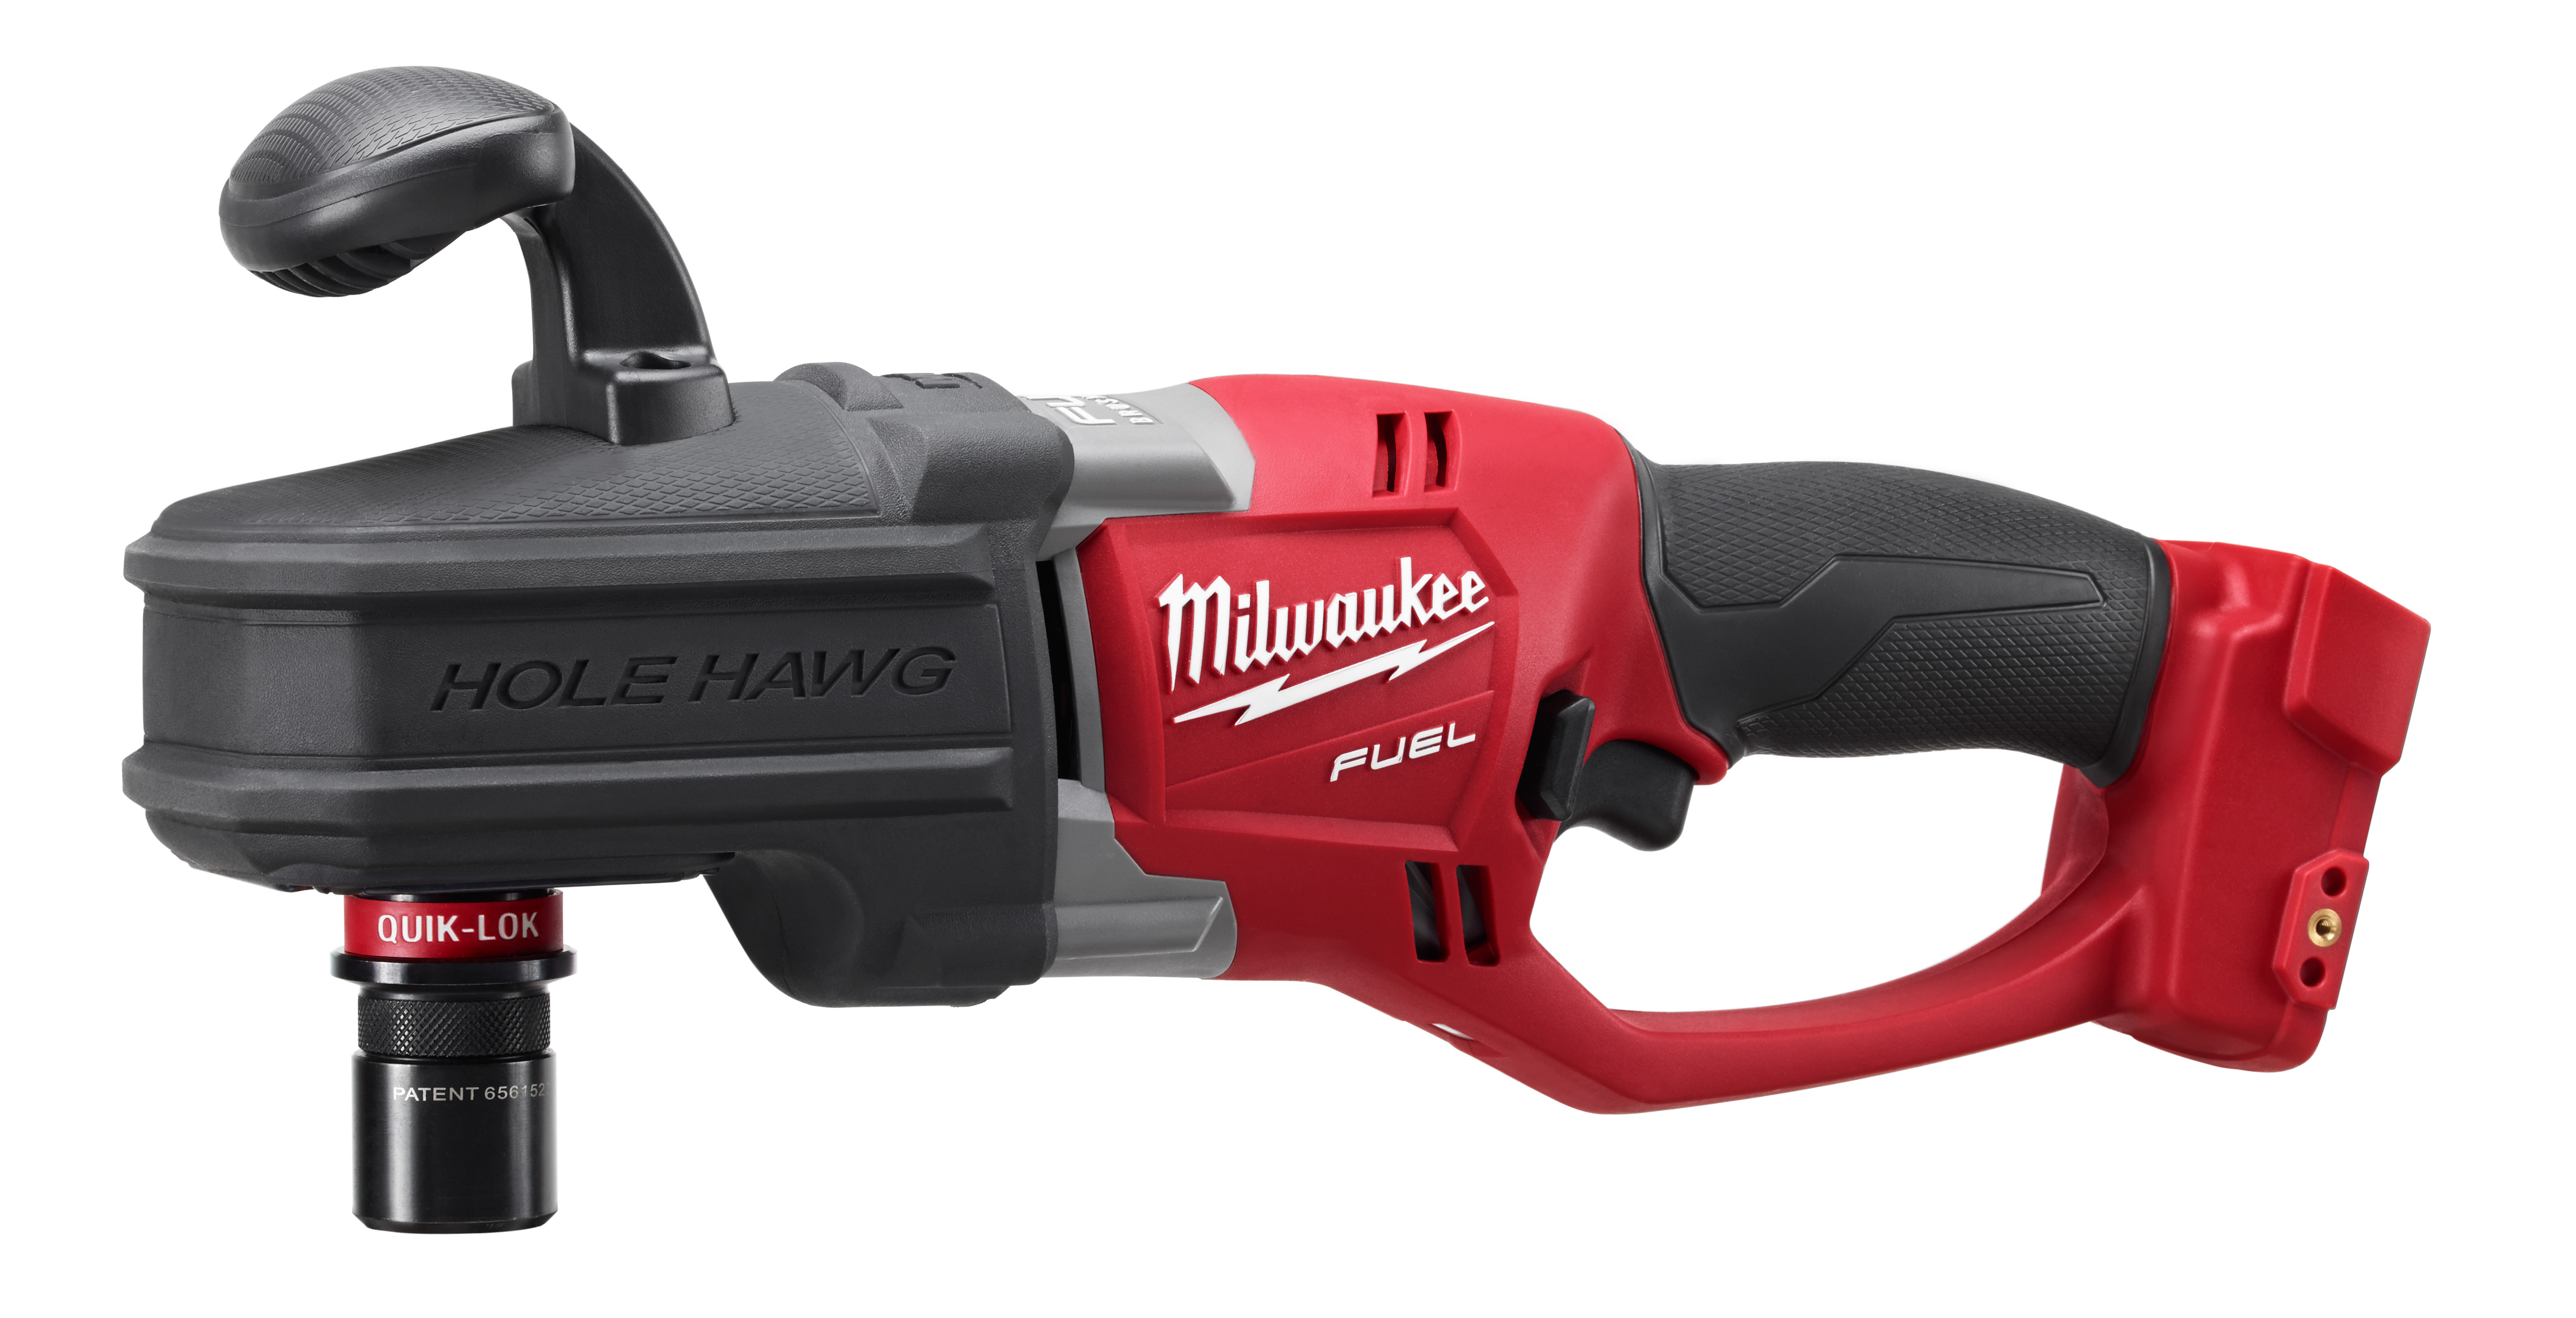 Milwaukee® M18™ FUEL™ 2708-20 HOLE HAWG® Cordless Right Angle Drill, 1/2 in QUIK-LOK™ Chuck, 18 VDC, 650 ft-lb Torque, 0 to 1200 rpm No-Load, 17 in OAL, Lithium-Ion Battery